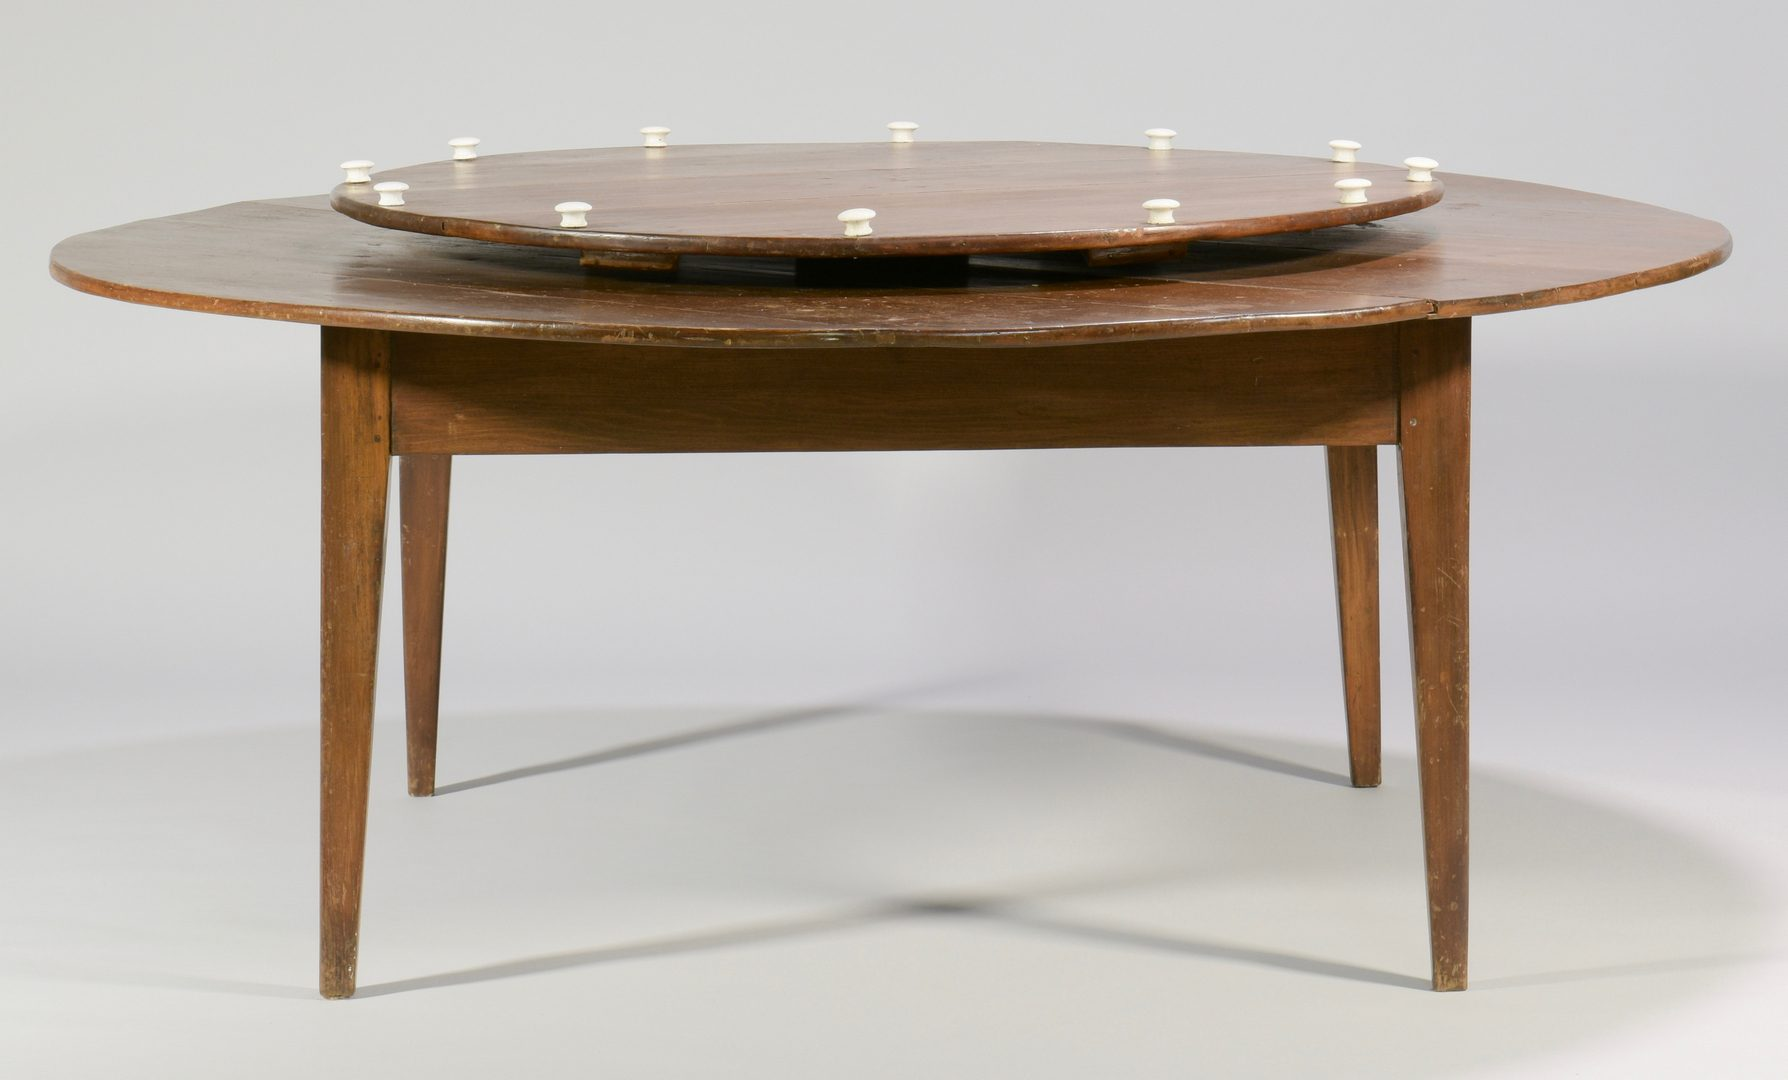 Lot 124: Tennessee Lazy Susan Table